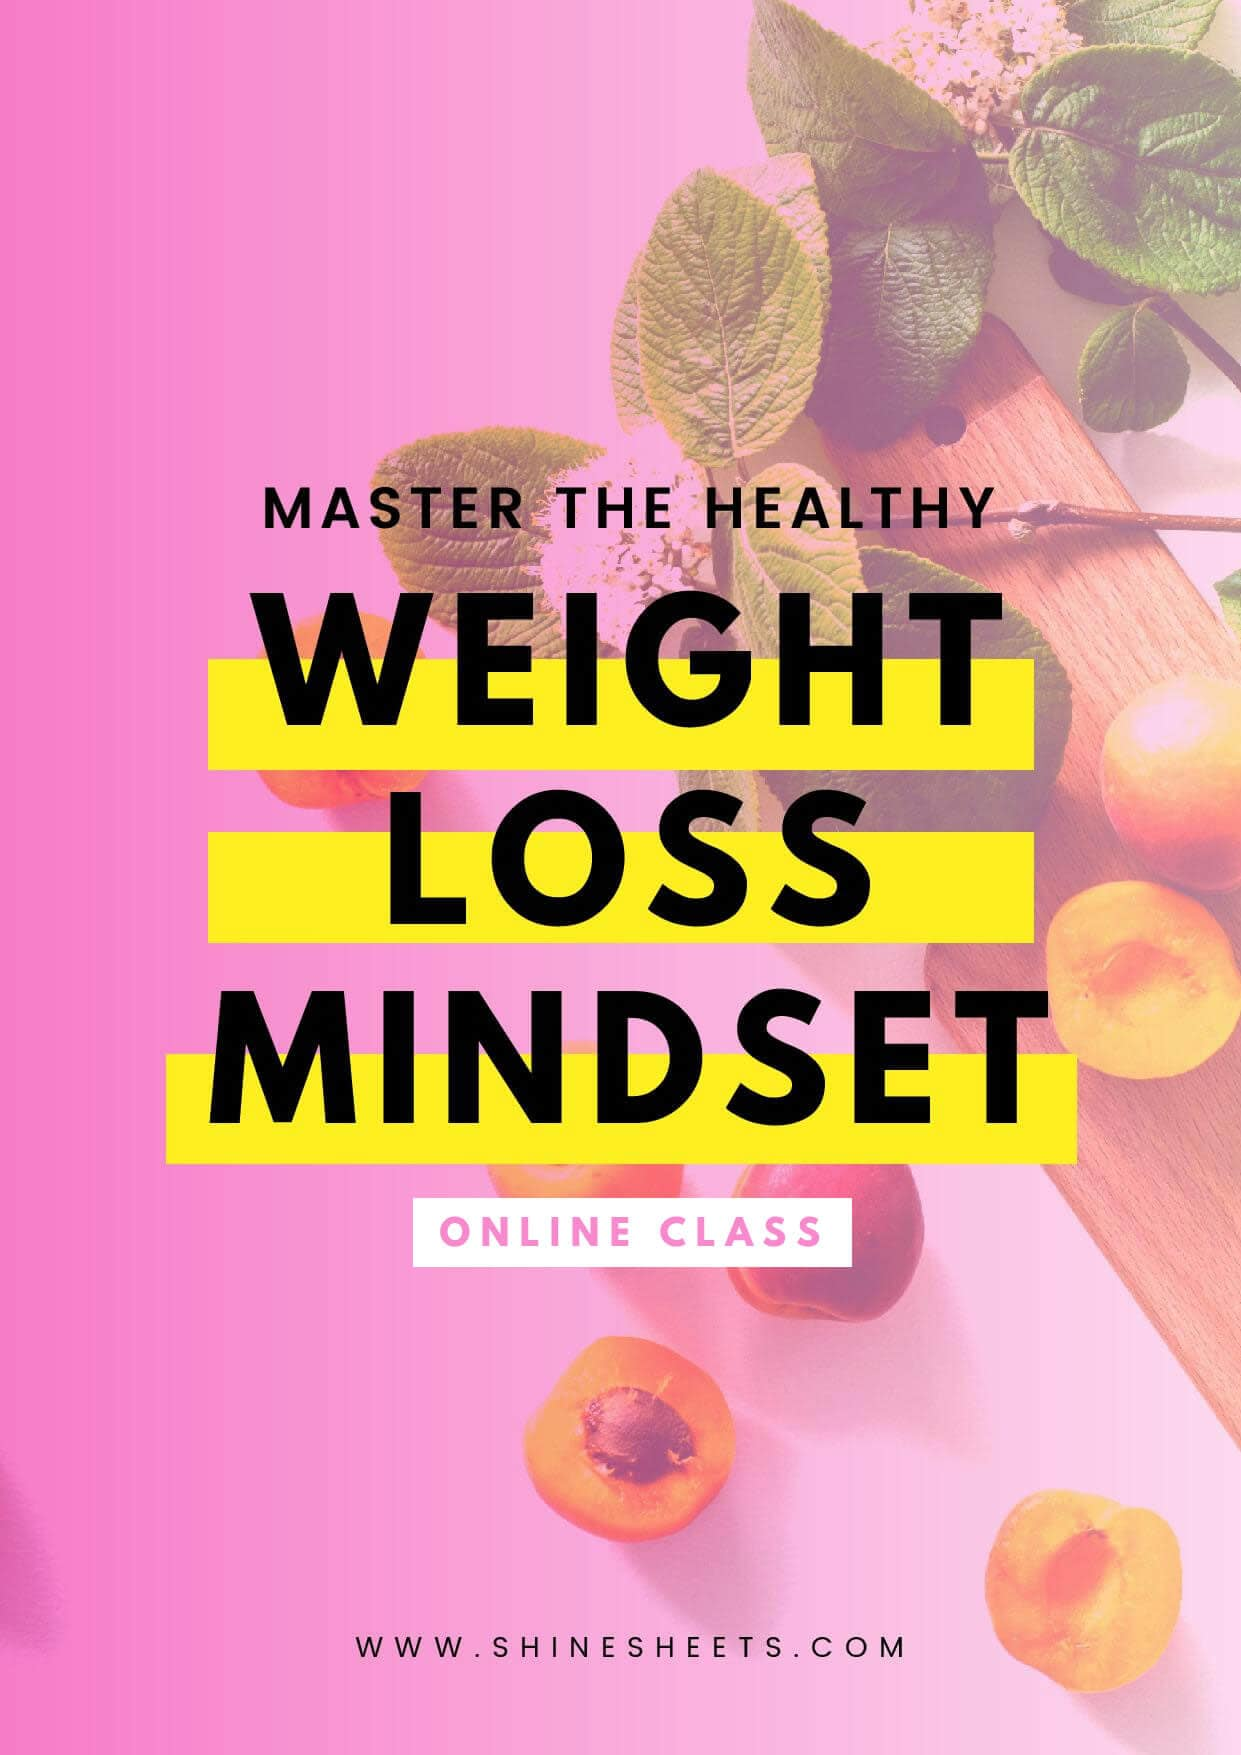 Master The Healthy Weight Loss Mindset ONLINE CLASS + E-BOOK (42 PAGES)